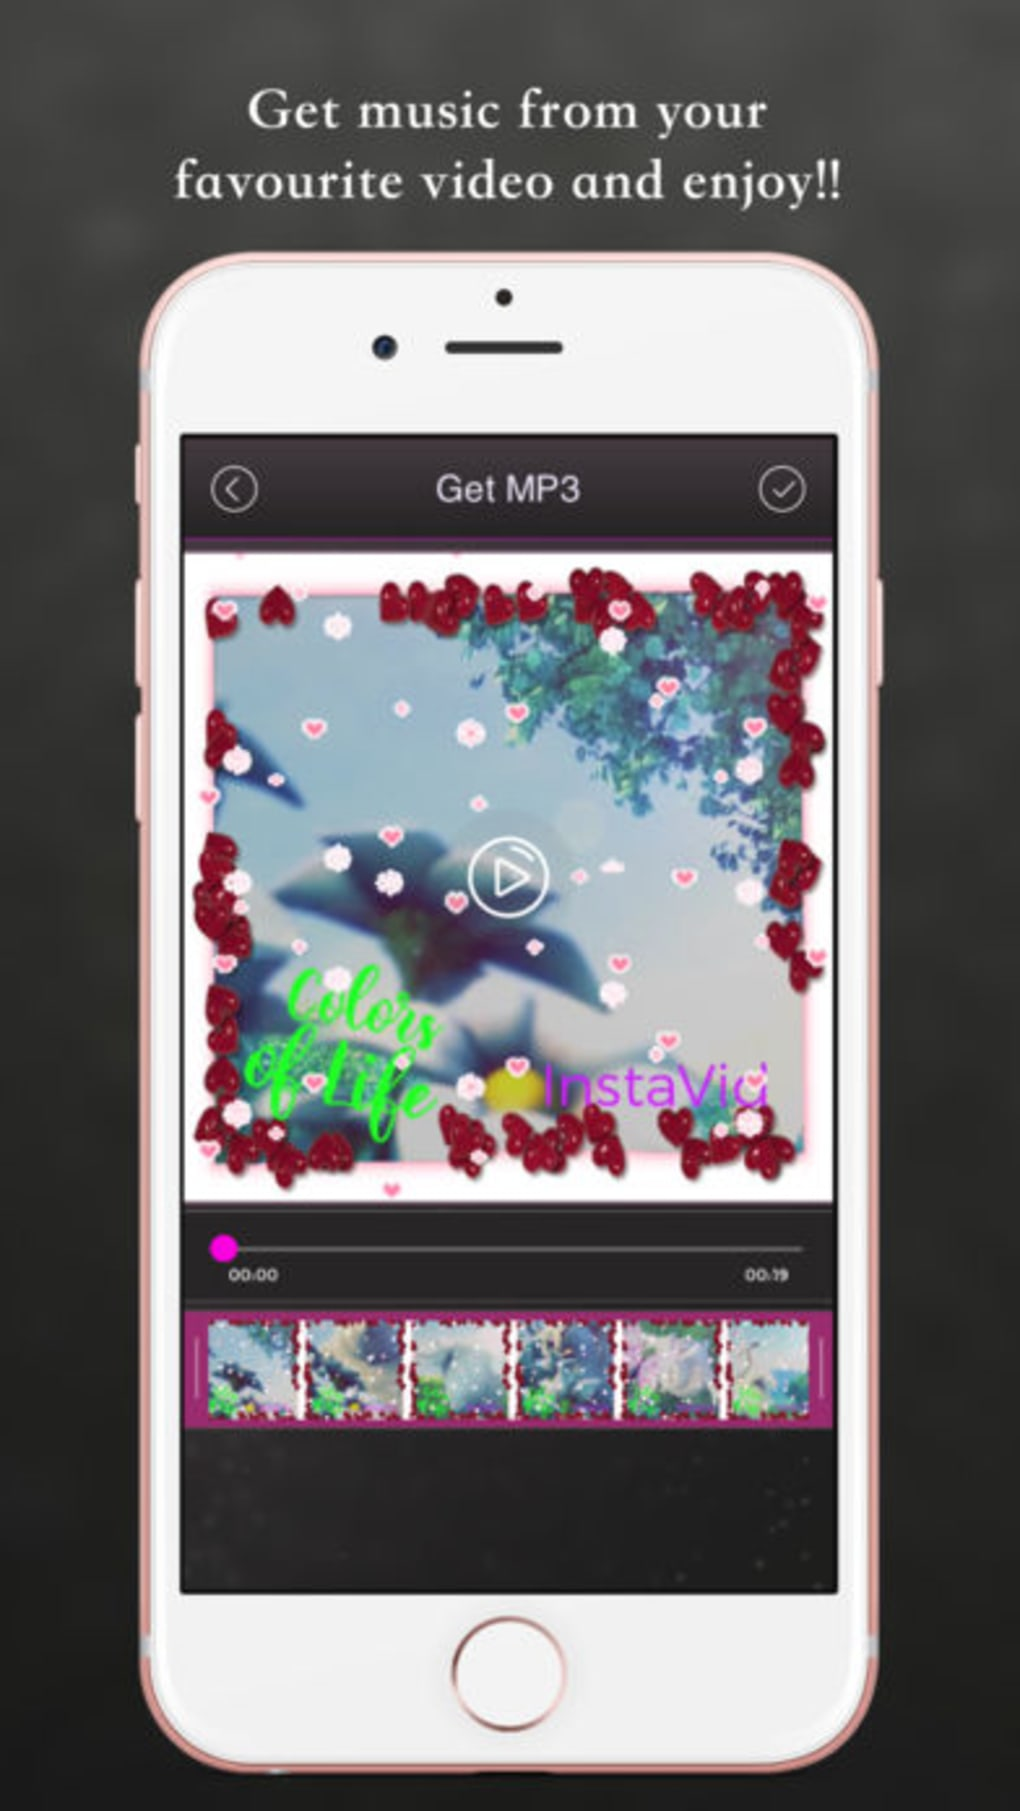 Offline Music Player-MusicMate for iPhone - Download